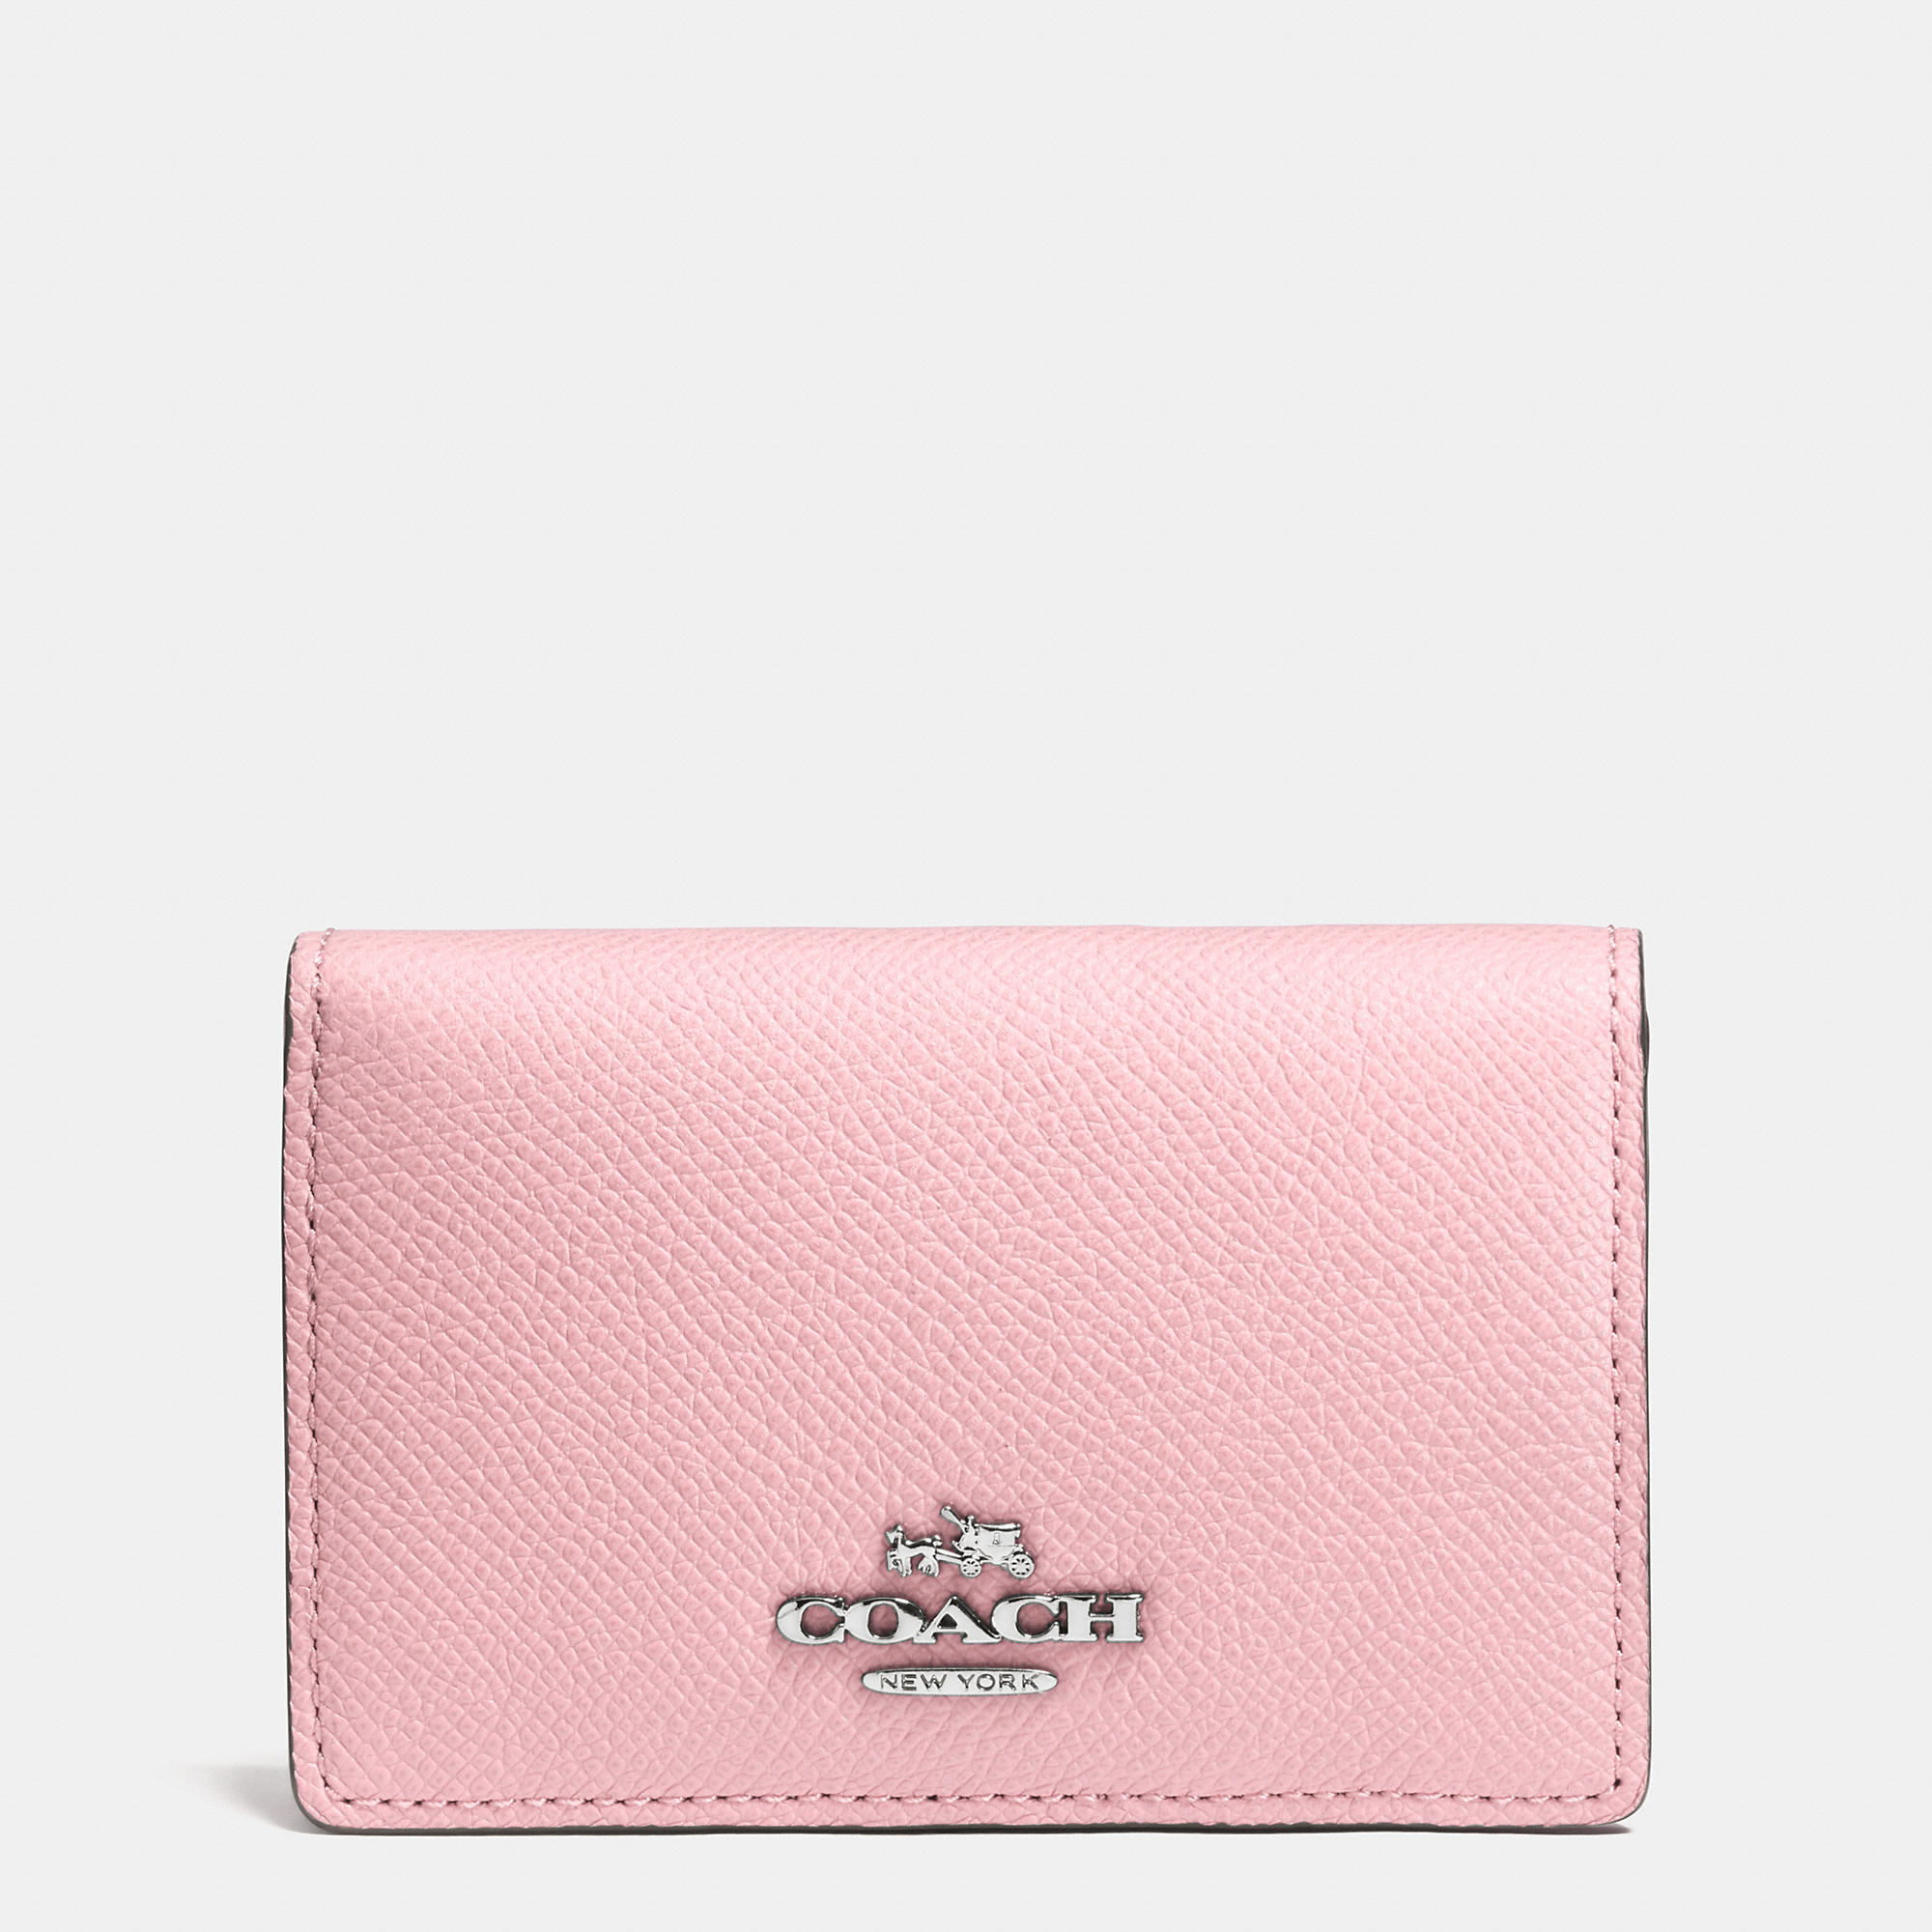 Lyst - Coach Business Card Case In Crossgrain Leather in Pink